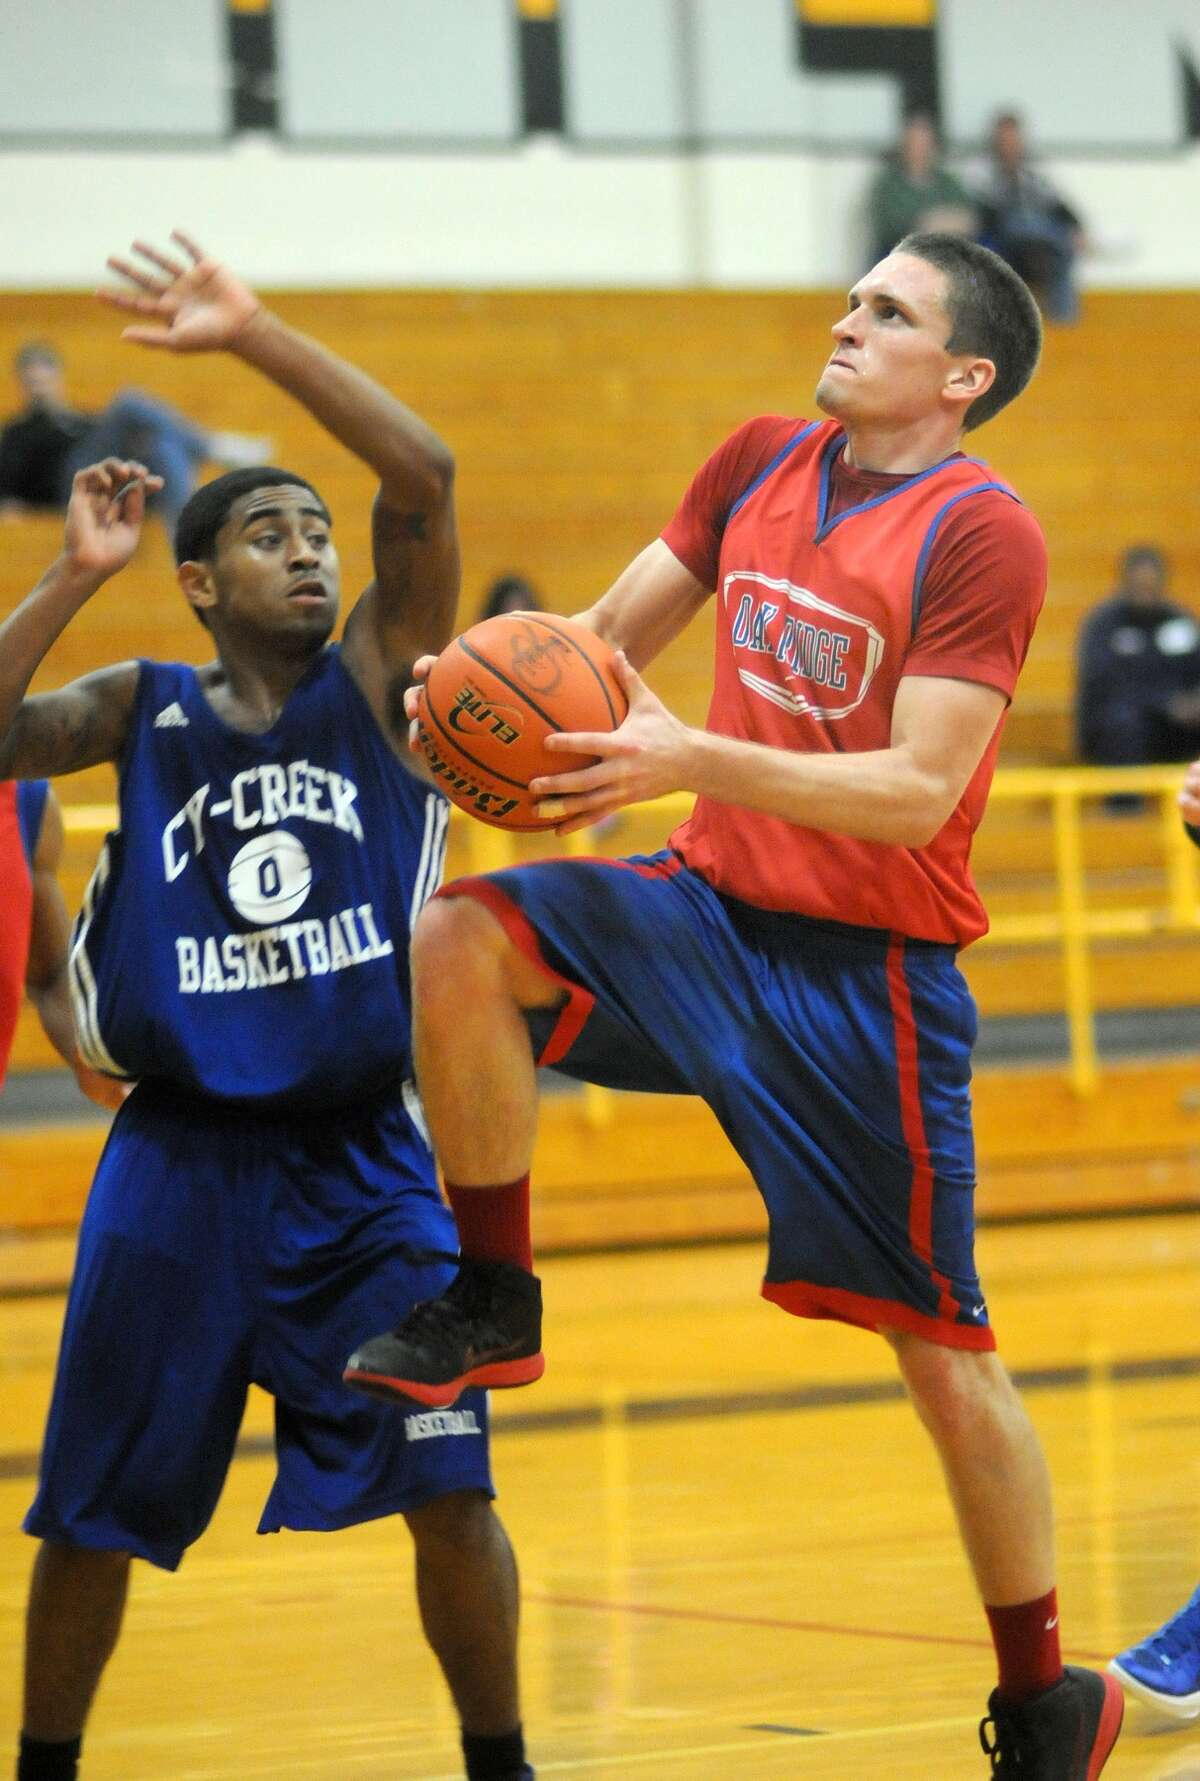 Oak Ridge senior guard Tanner Doyle was a first-team all-district pick the last two years.